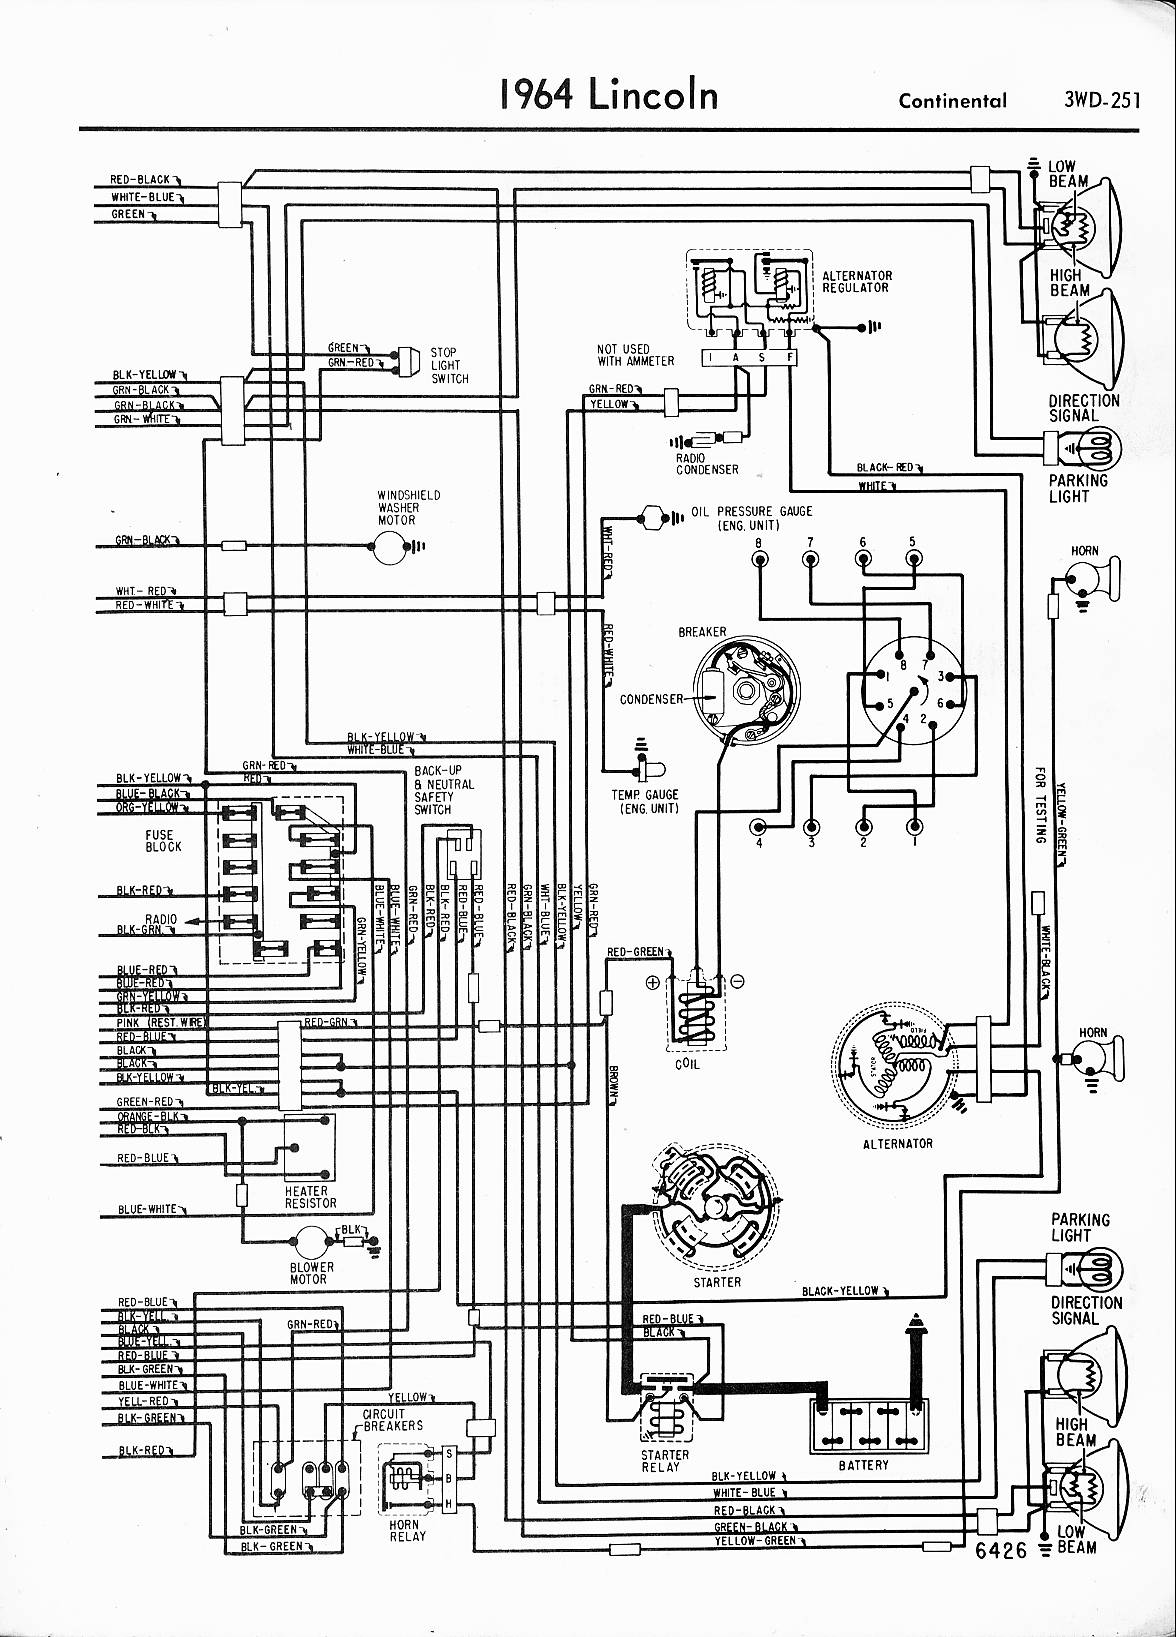 Lincoln Wiring Diagram Archive Of Automotive Impala Ls Fuse Box Diagrams 1957 1965 Rh Oldcarmanualproject Com